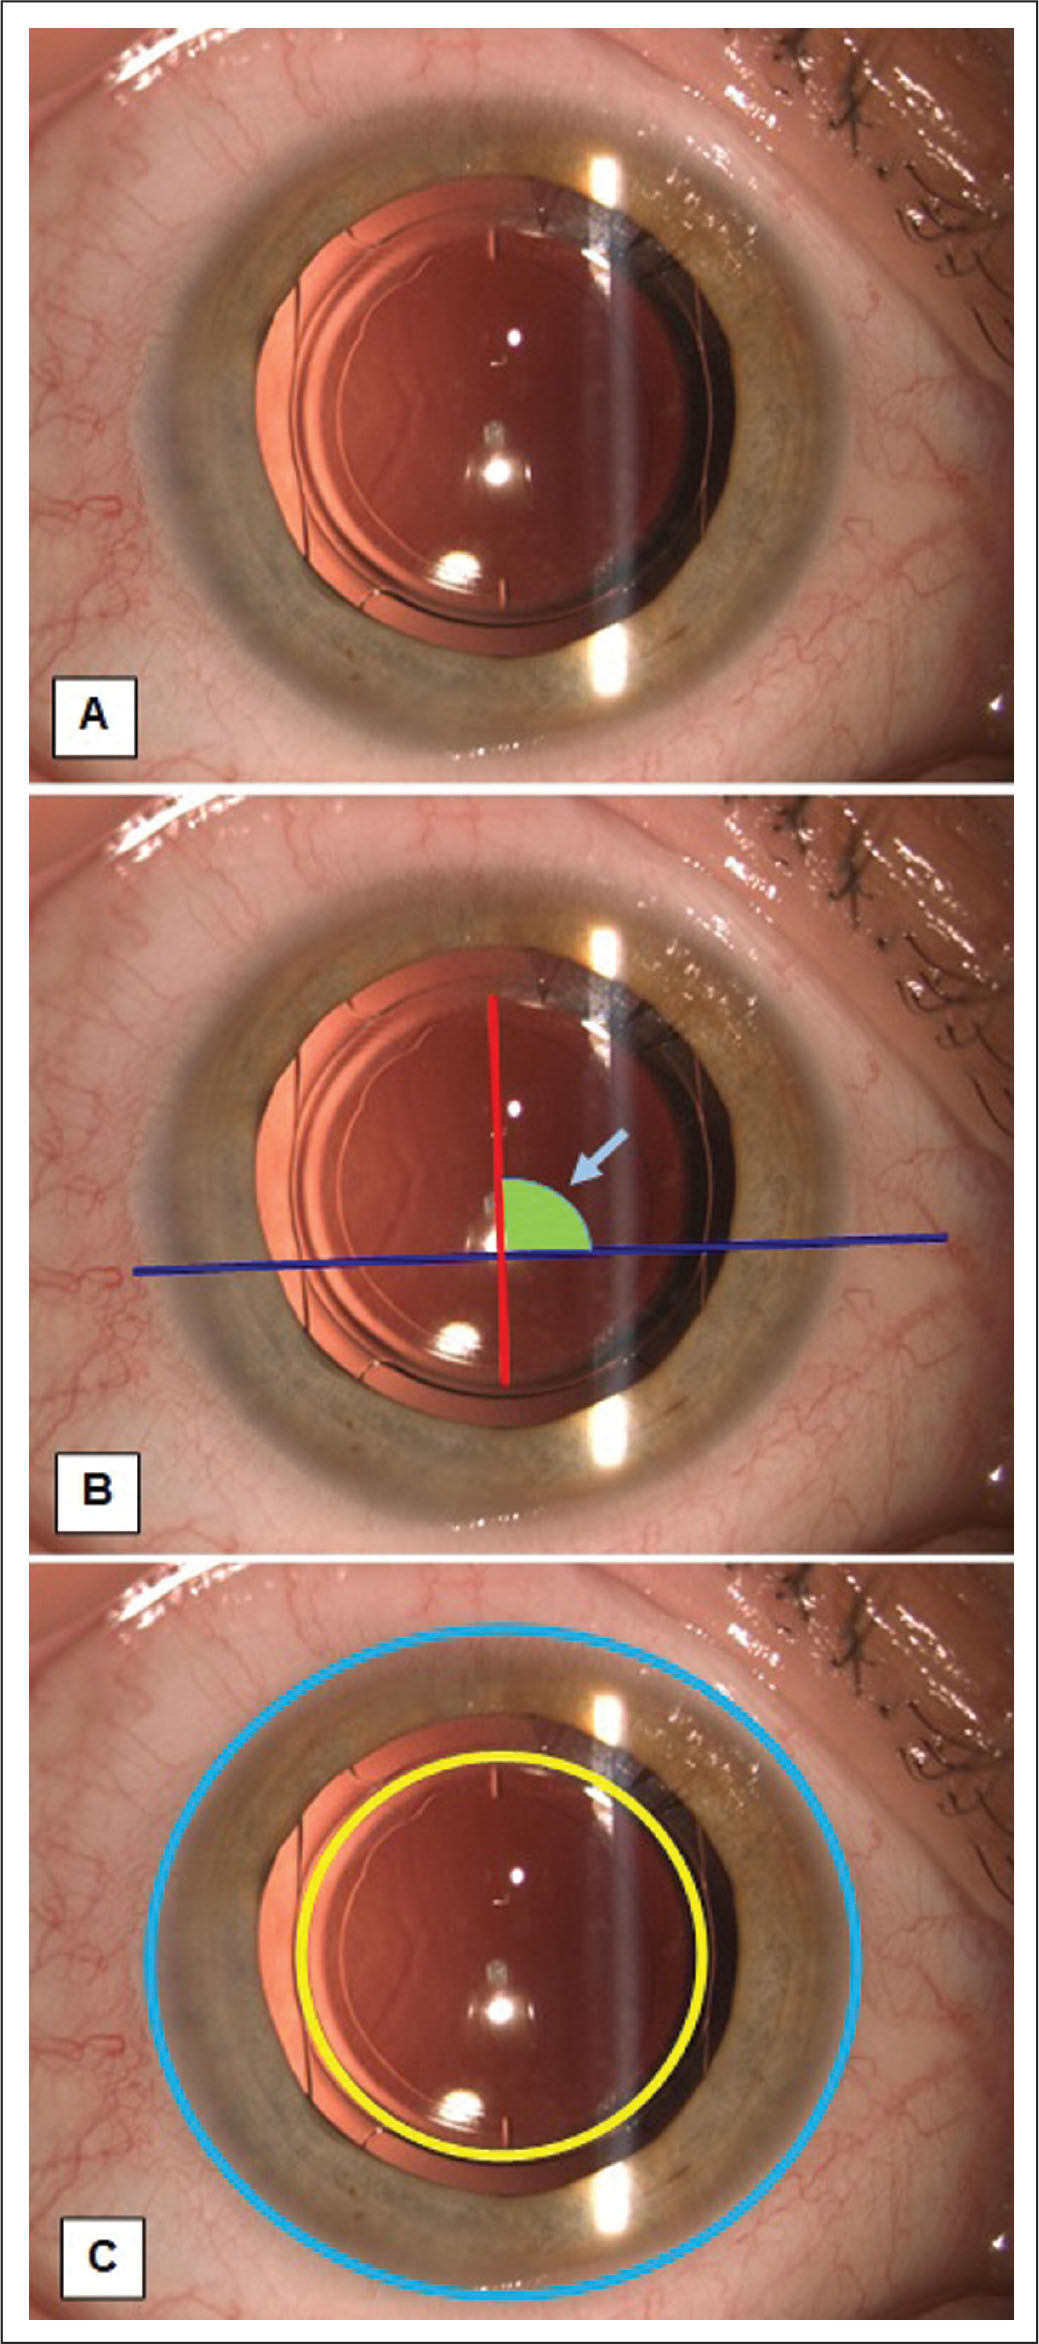 Image analysis for rotation and centration. (A) Original image of intraocular lens in situ, circumference of lens, and engraved markings clearly visible. (B) Line drawn joining engravings and separate line drawn joining two clearly visible conjunctival vessels. The angle between these lines is measured and compared at each visit to determine rotation. (C) Circle drawn to circumscribe the lens optic edge and one to circumscribe the limbus. Centers are compared for each visit to determine centration.